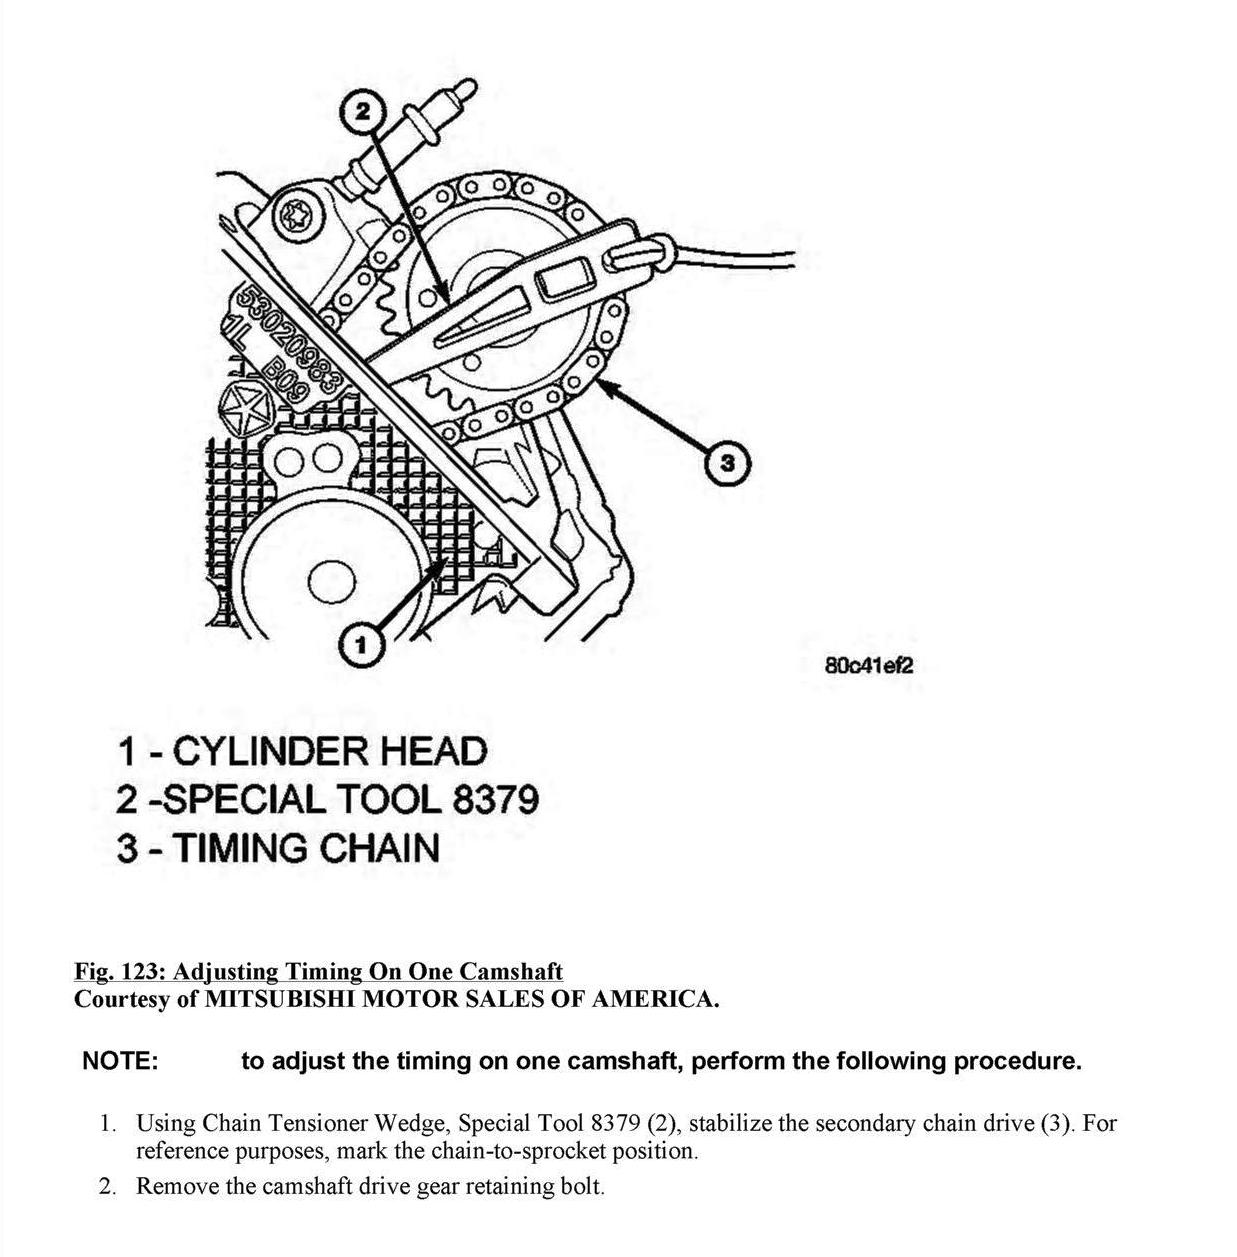 On My 37 V6 Engine There Are 2 Plated Timing Chain Link Covers 2002 Jeep Liberty Diagram As Well Cherokee Water Pump 7 Graphic